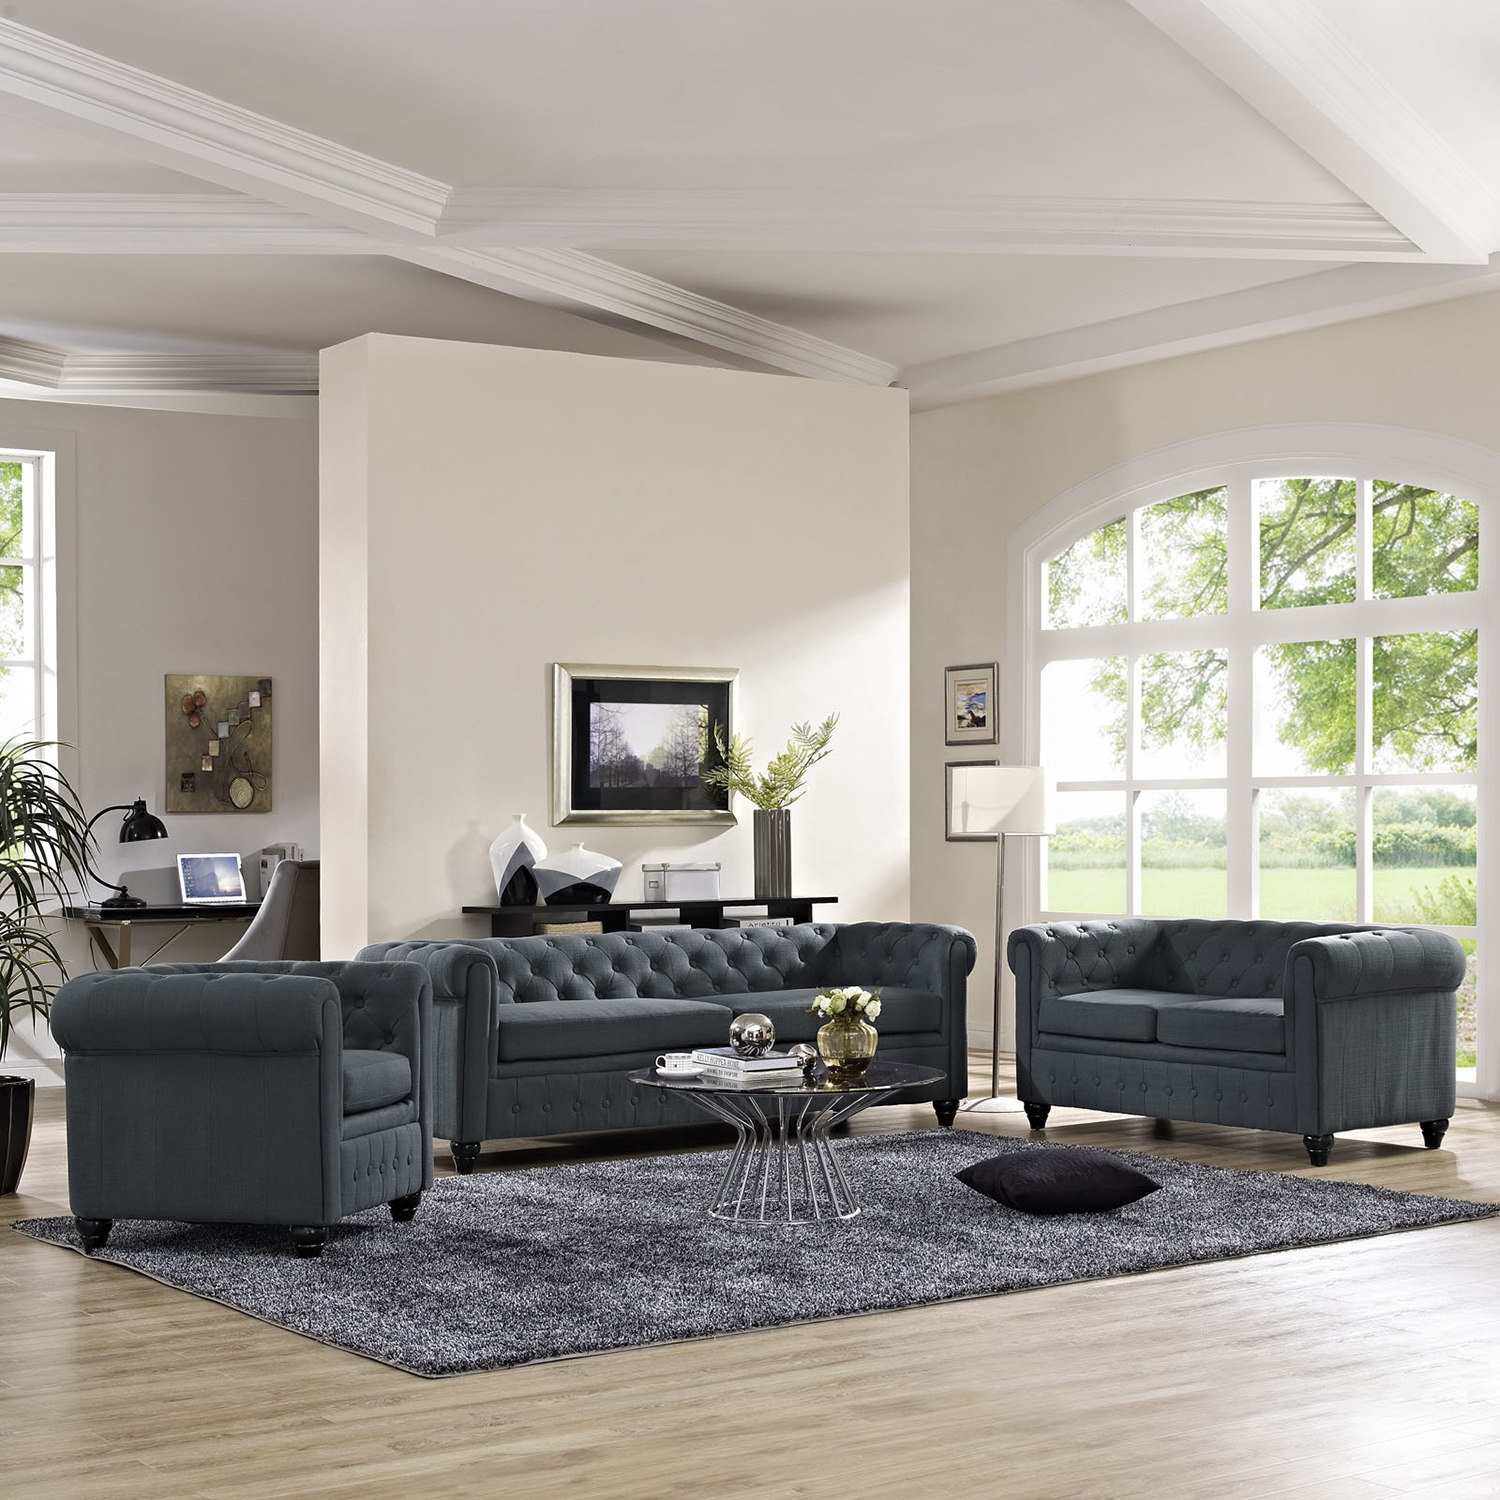 Earl 3 Pieces Fabric Sofa Set - Button Tufted, Gray - EEI-1776-GRY-SET